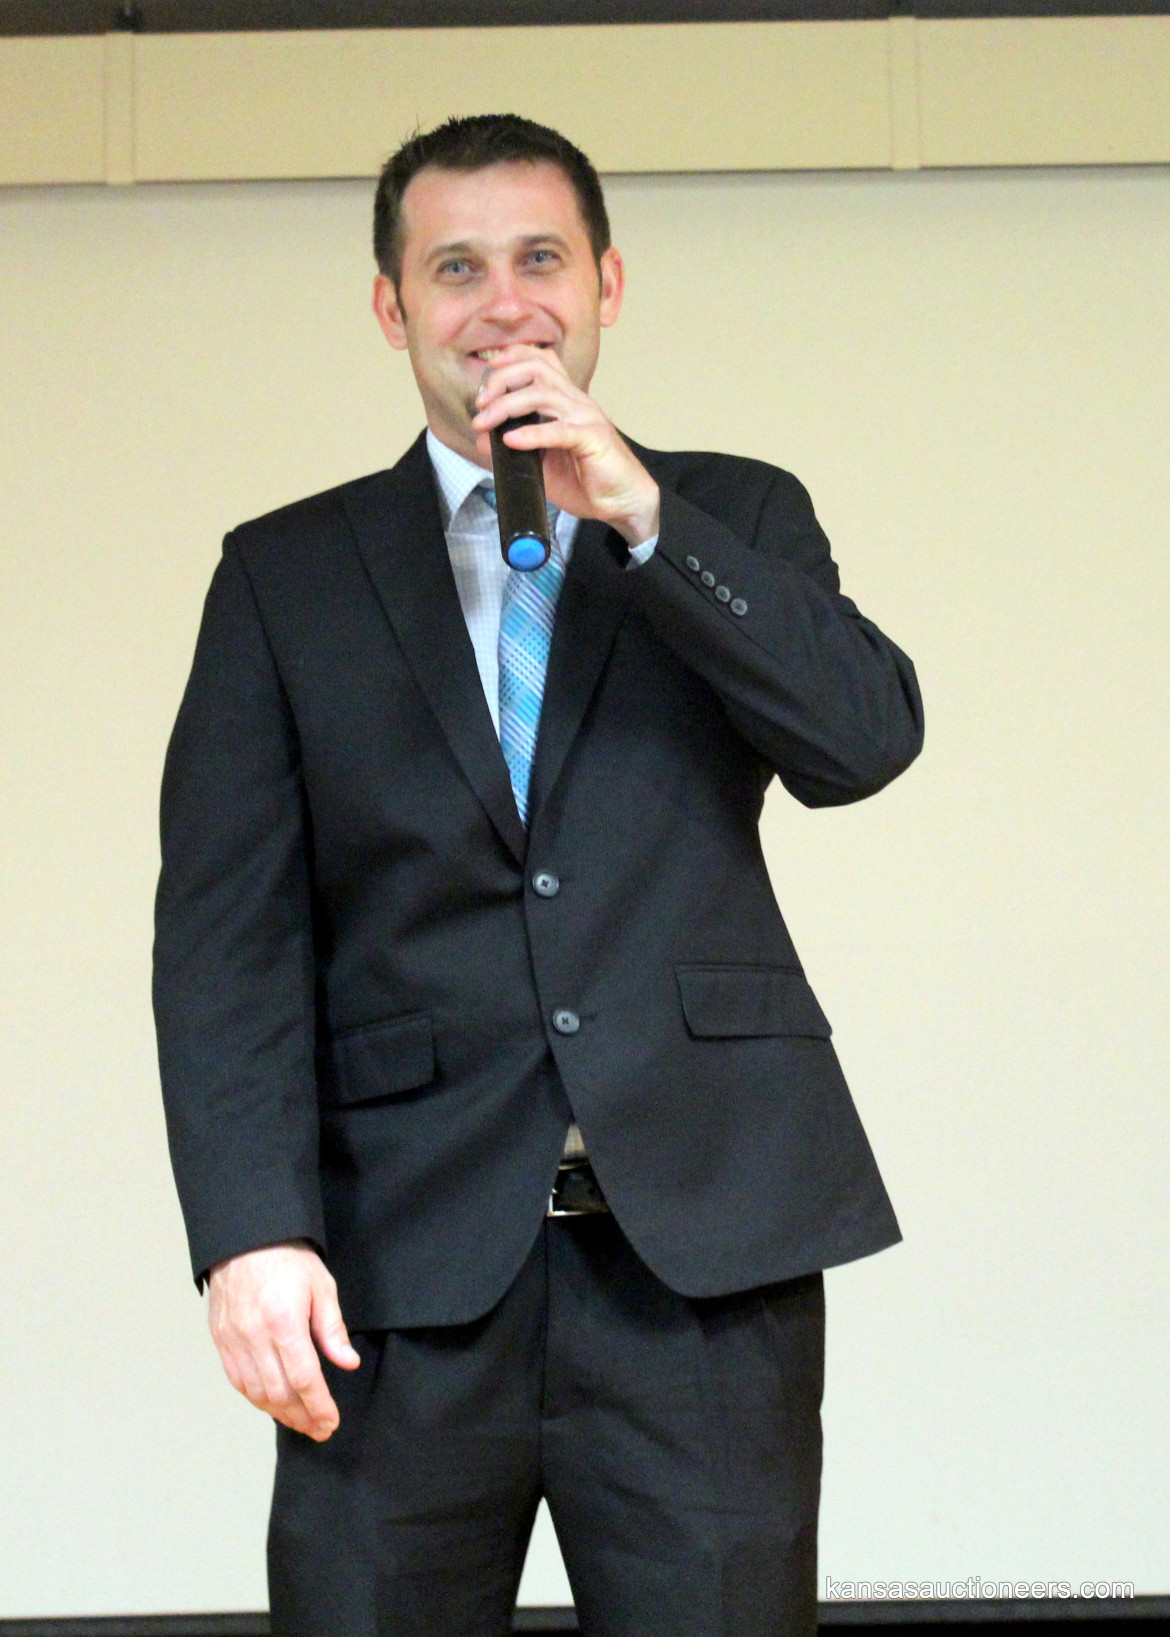 Titus Yutzy competing in the 2016 Kansas Auctioneer Preliminaries.